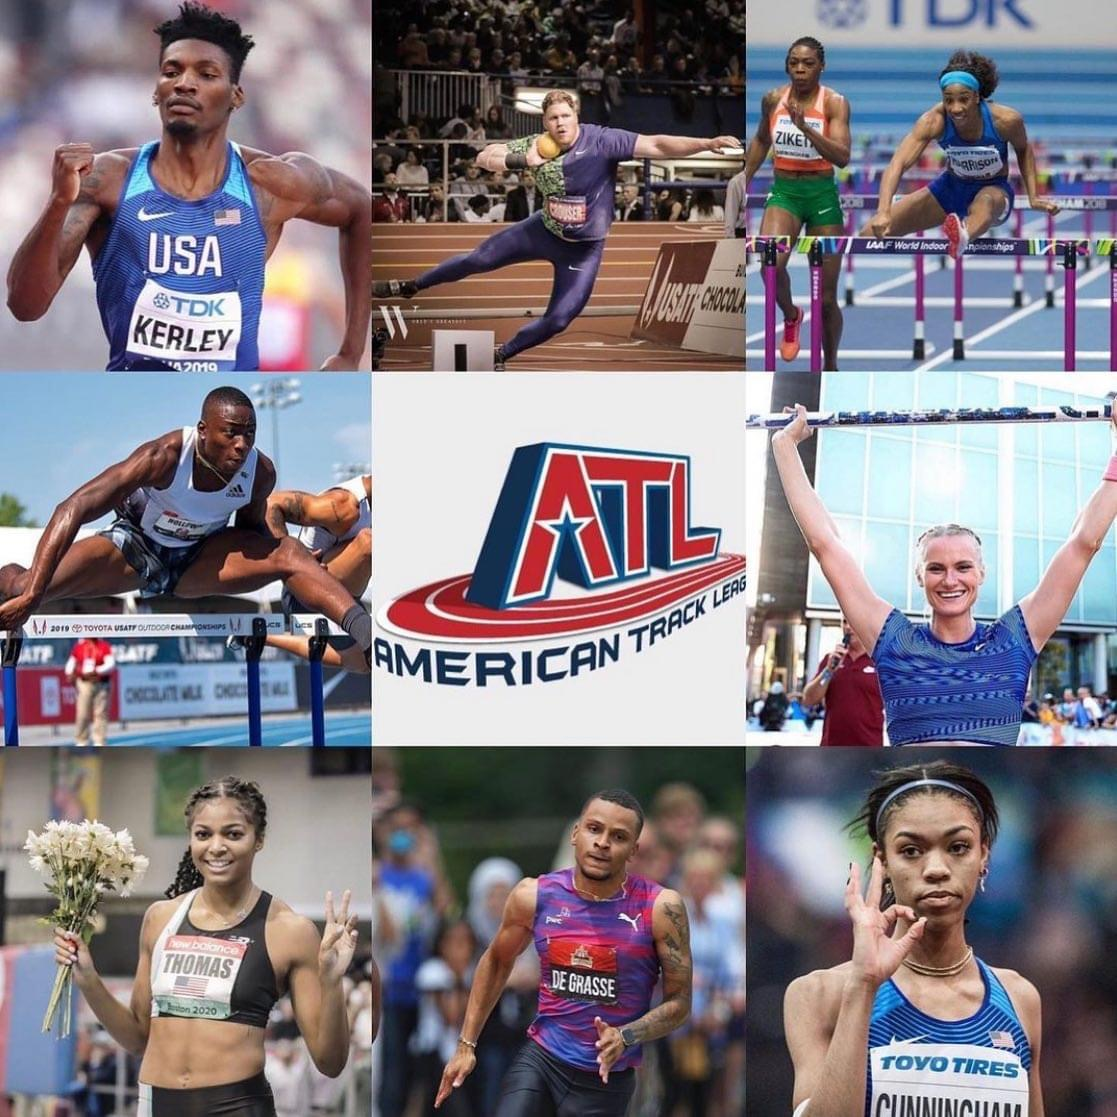 3pm EST on @espn the #AmericanTrackLeague gets pro track and field in 2021 off to a great start. @LewisJohnsonMG and @sandicheekspv on the calls.